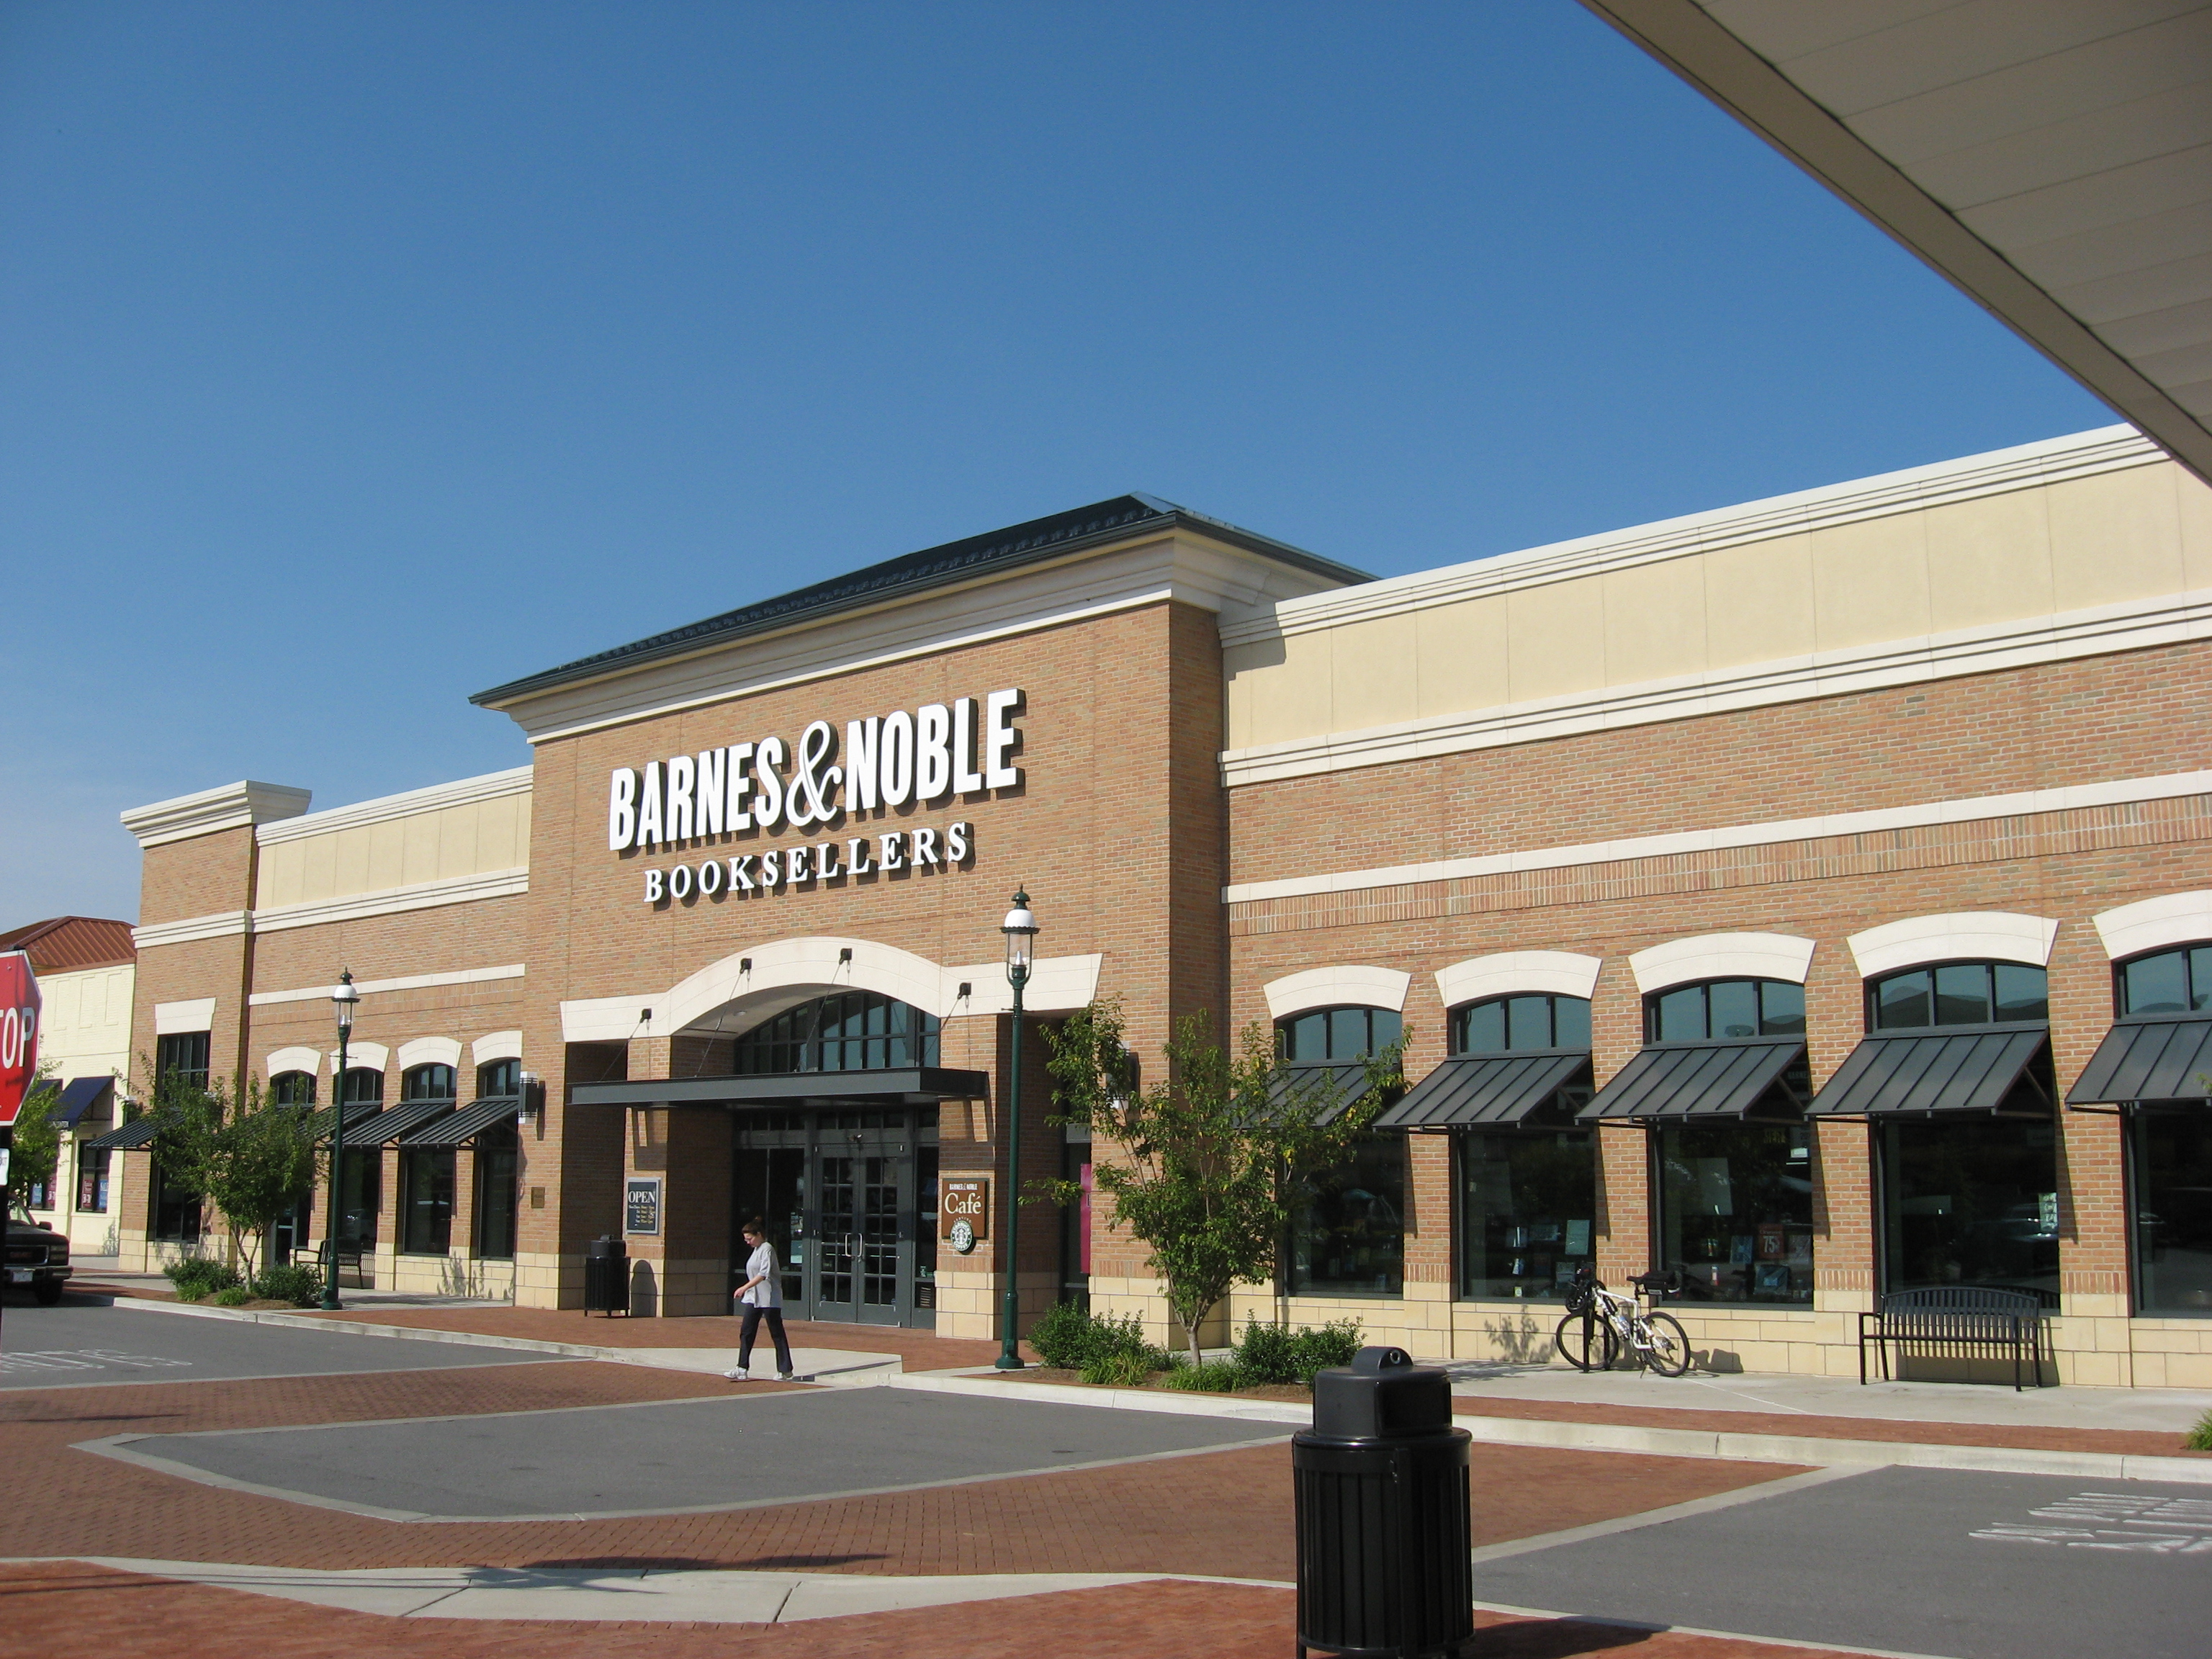 Last Minute Holiday Shopping: Barnes & Noble - Awkward Geeks